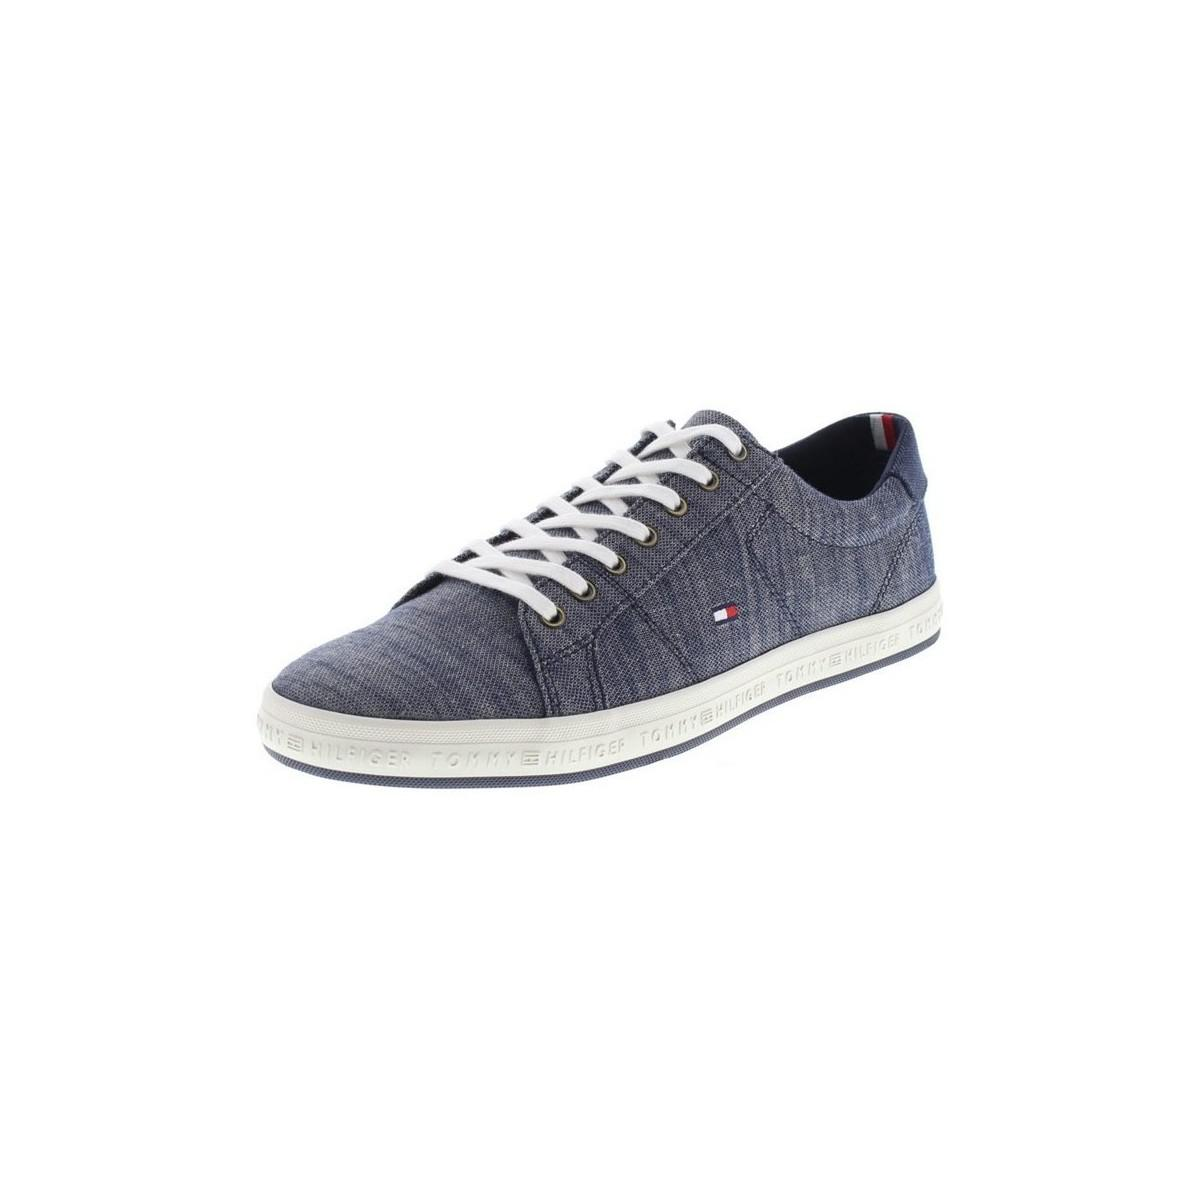 48748f31f7bf Tommy Hilfiger Fm01378 Men s Shoes (trainers) In Grey in Gray for ...